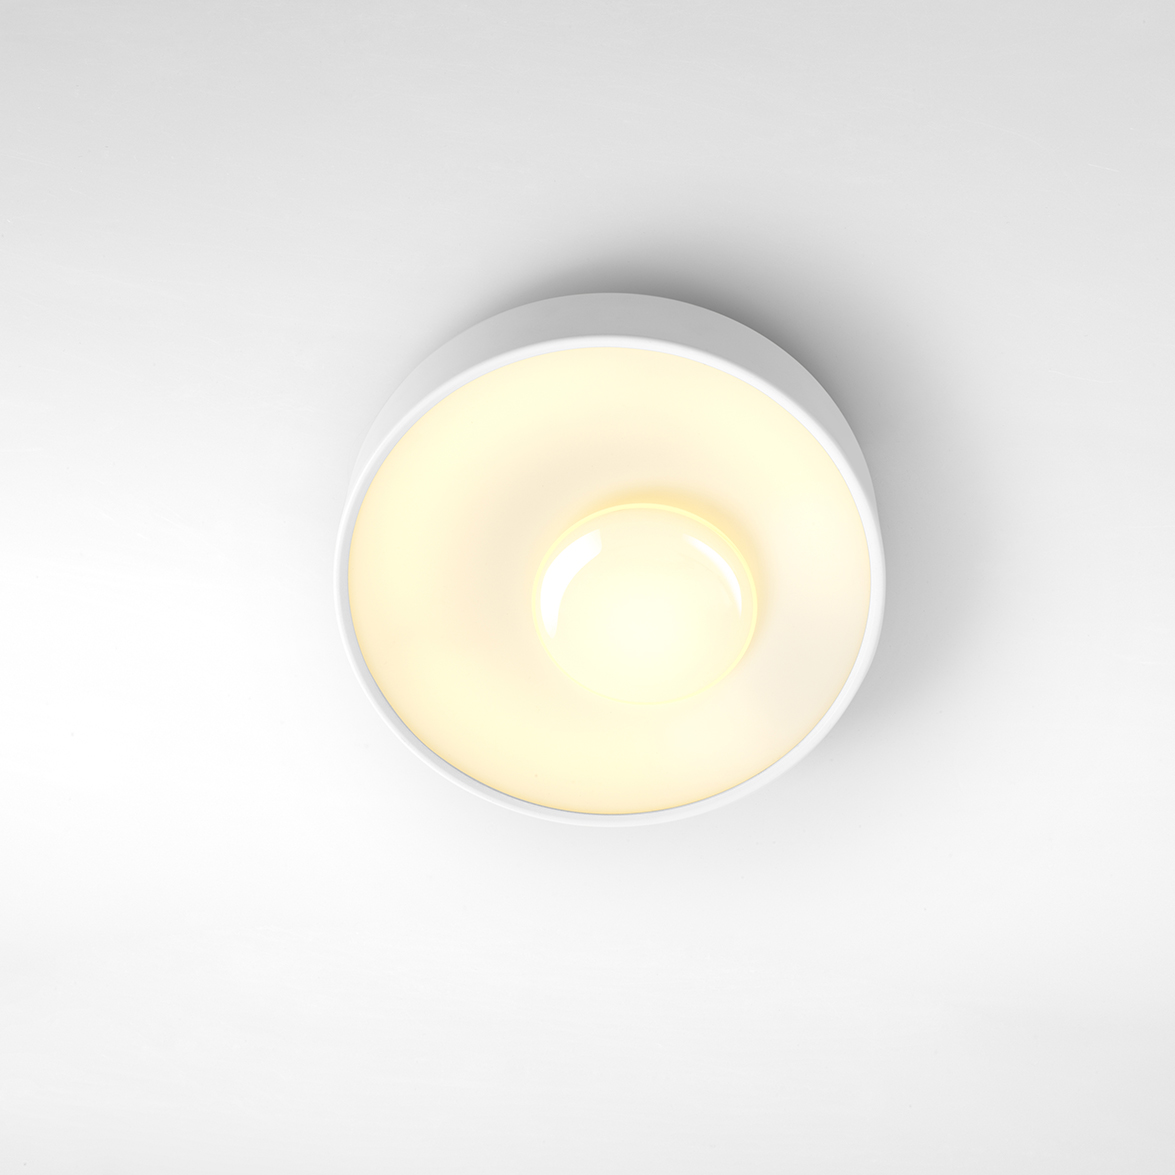 Sun Plafón 60 LED 33.6W Blanco (Dimmable)